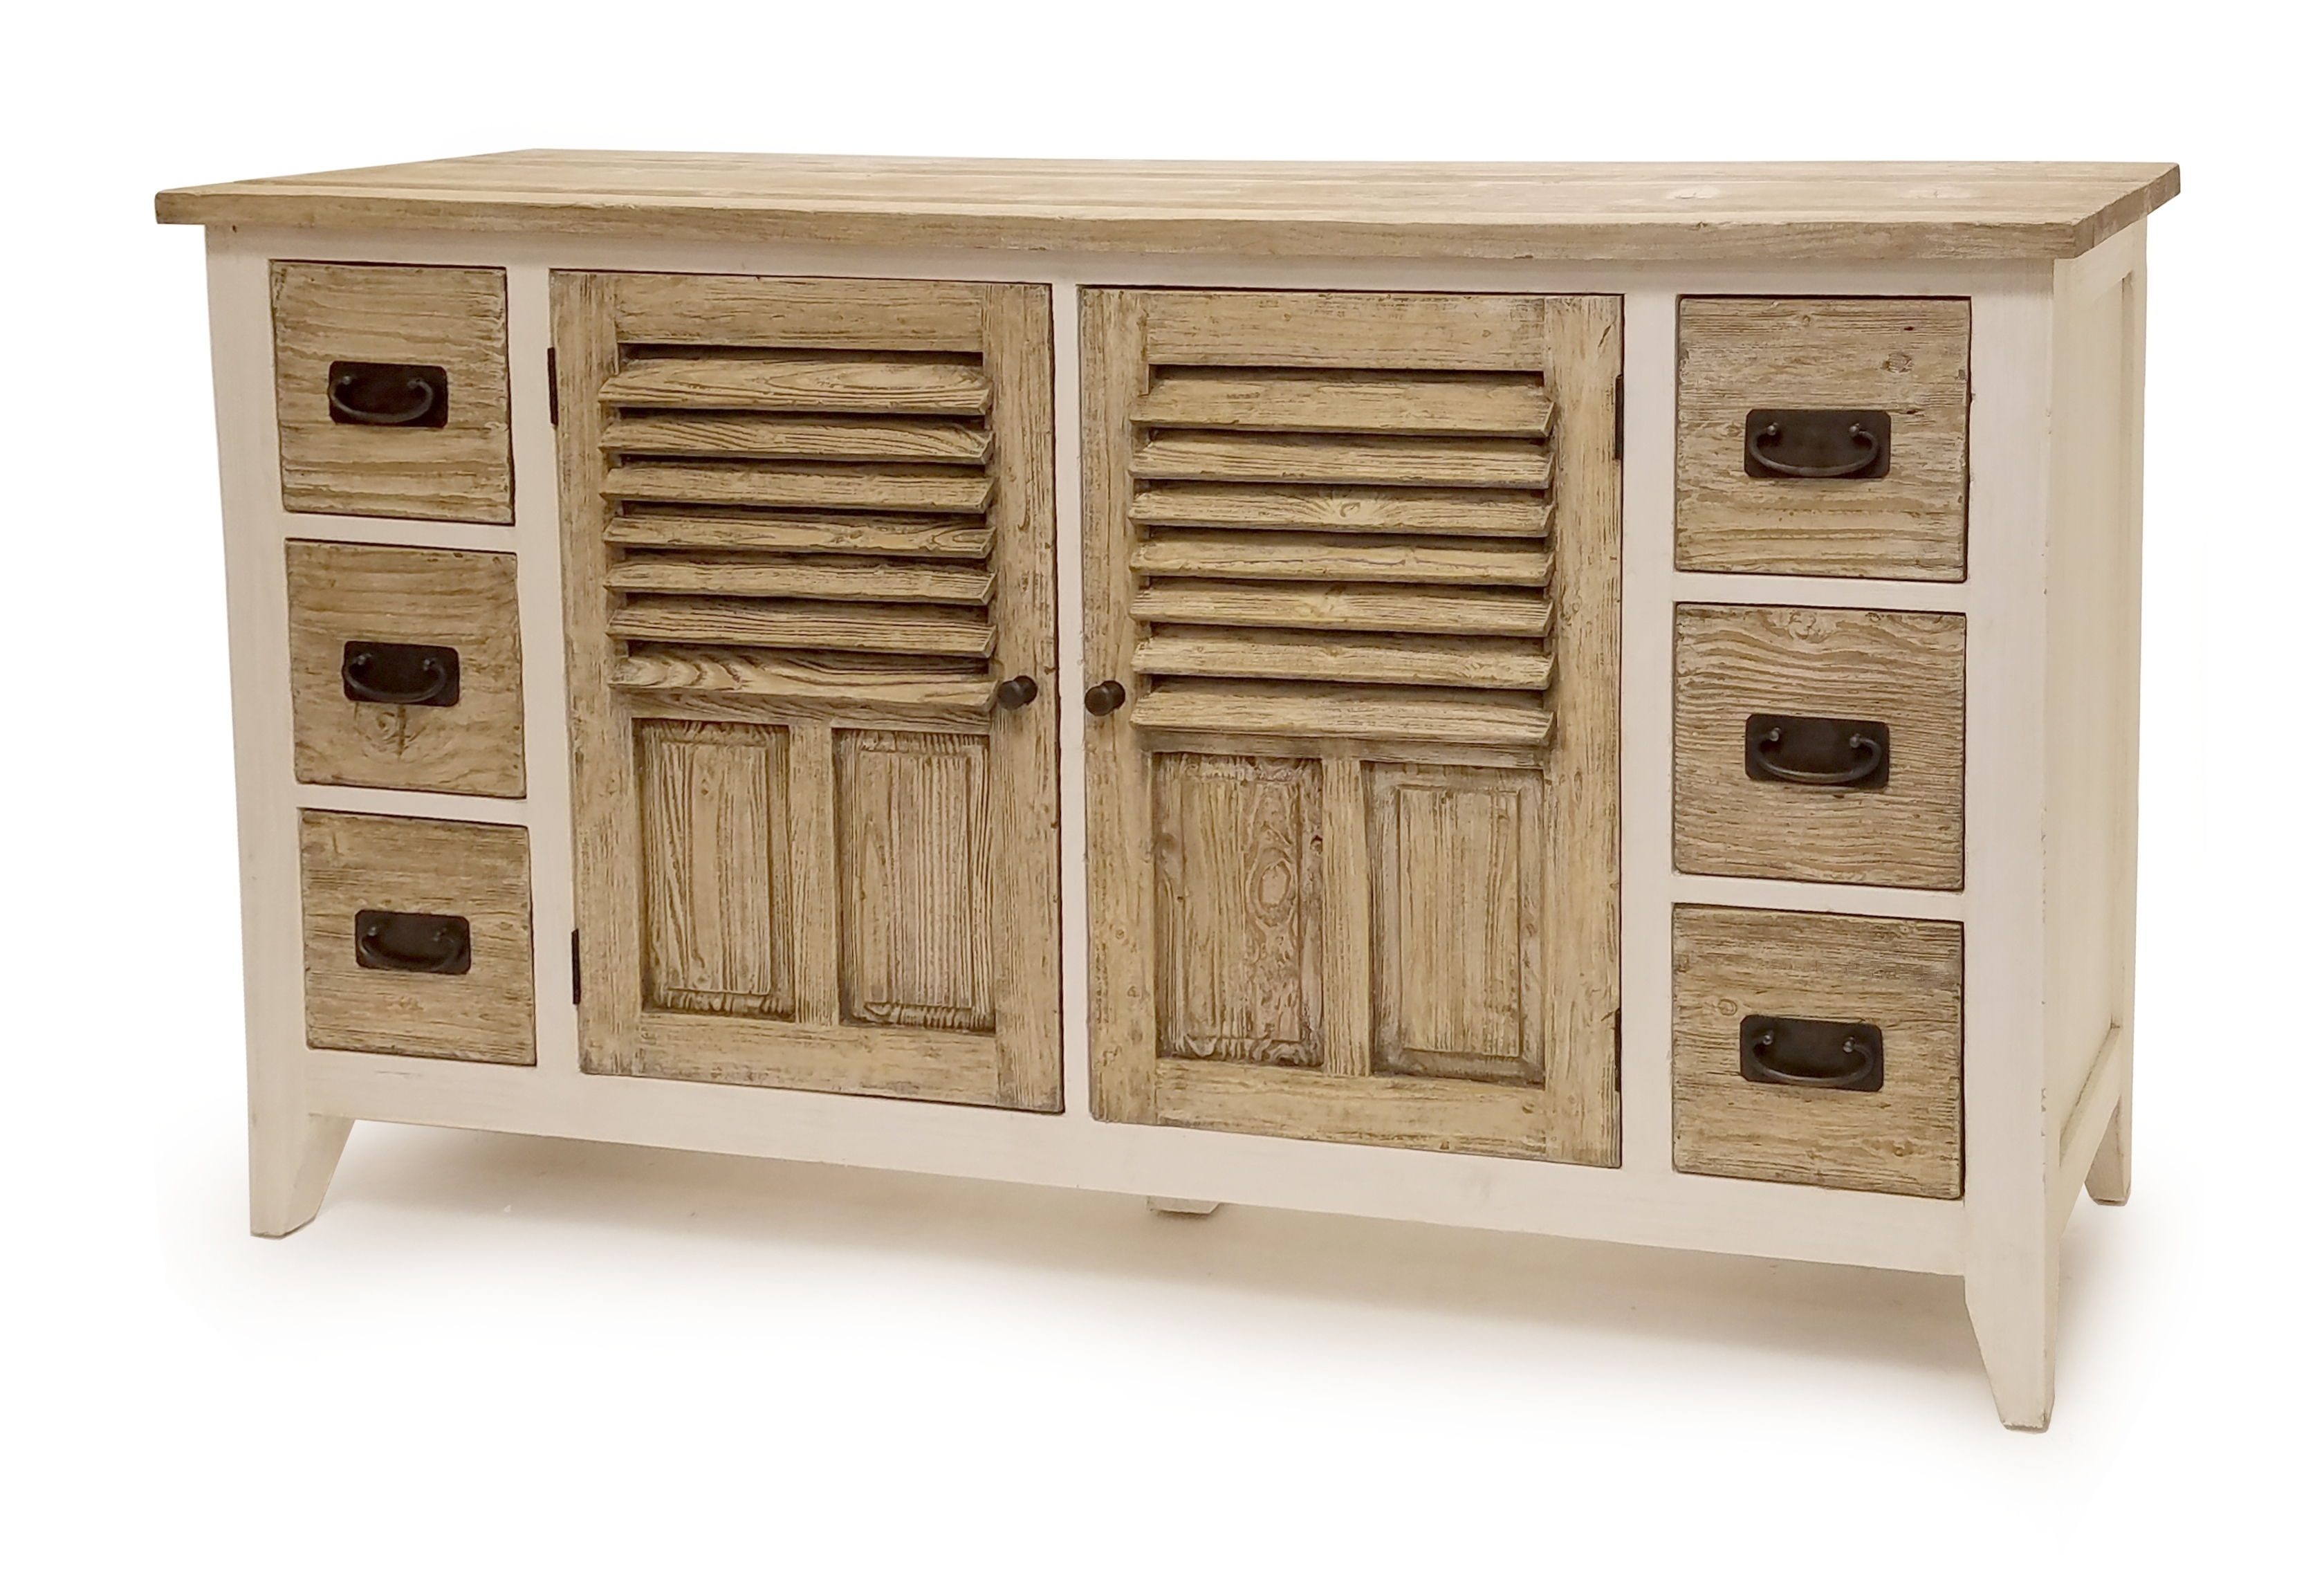 Consoles & Cabinets | Redbarn Furniture pertaining to 4-Door/4-Drawer Cast Jali Sideboards (Image 5 of 30)